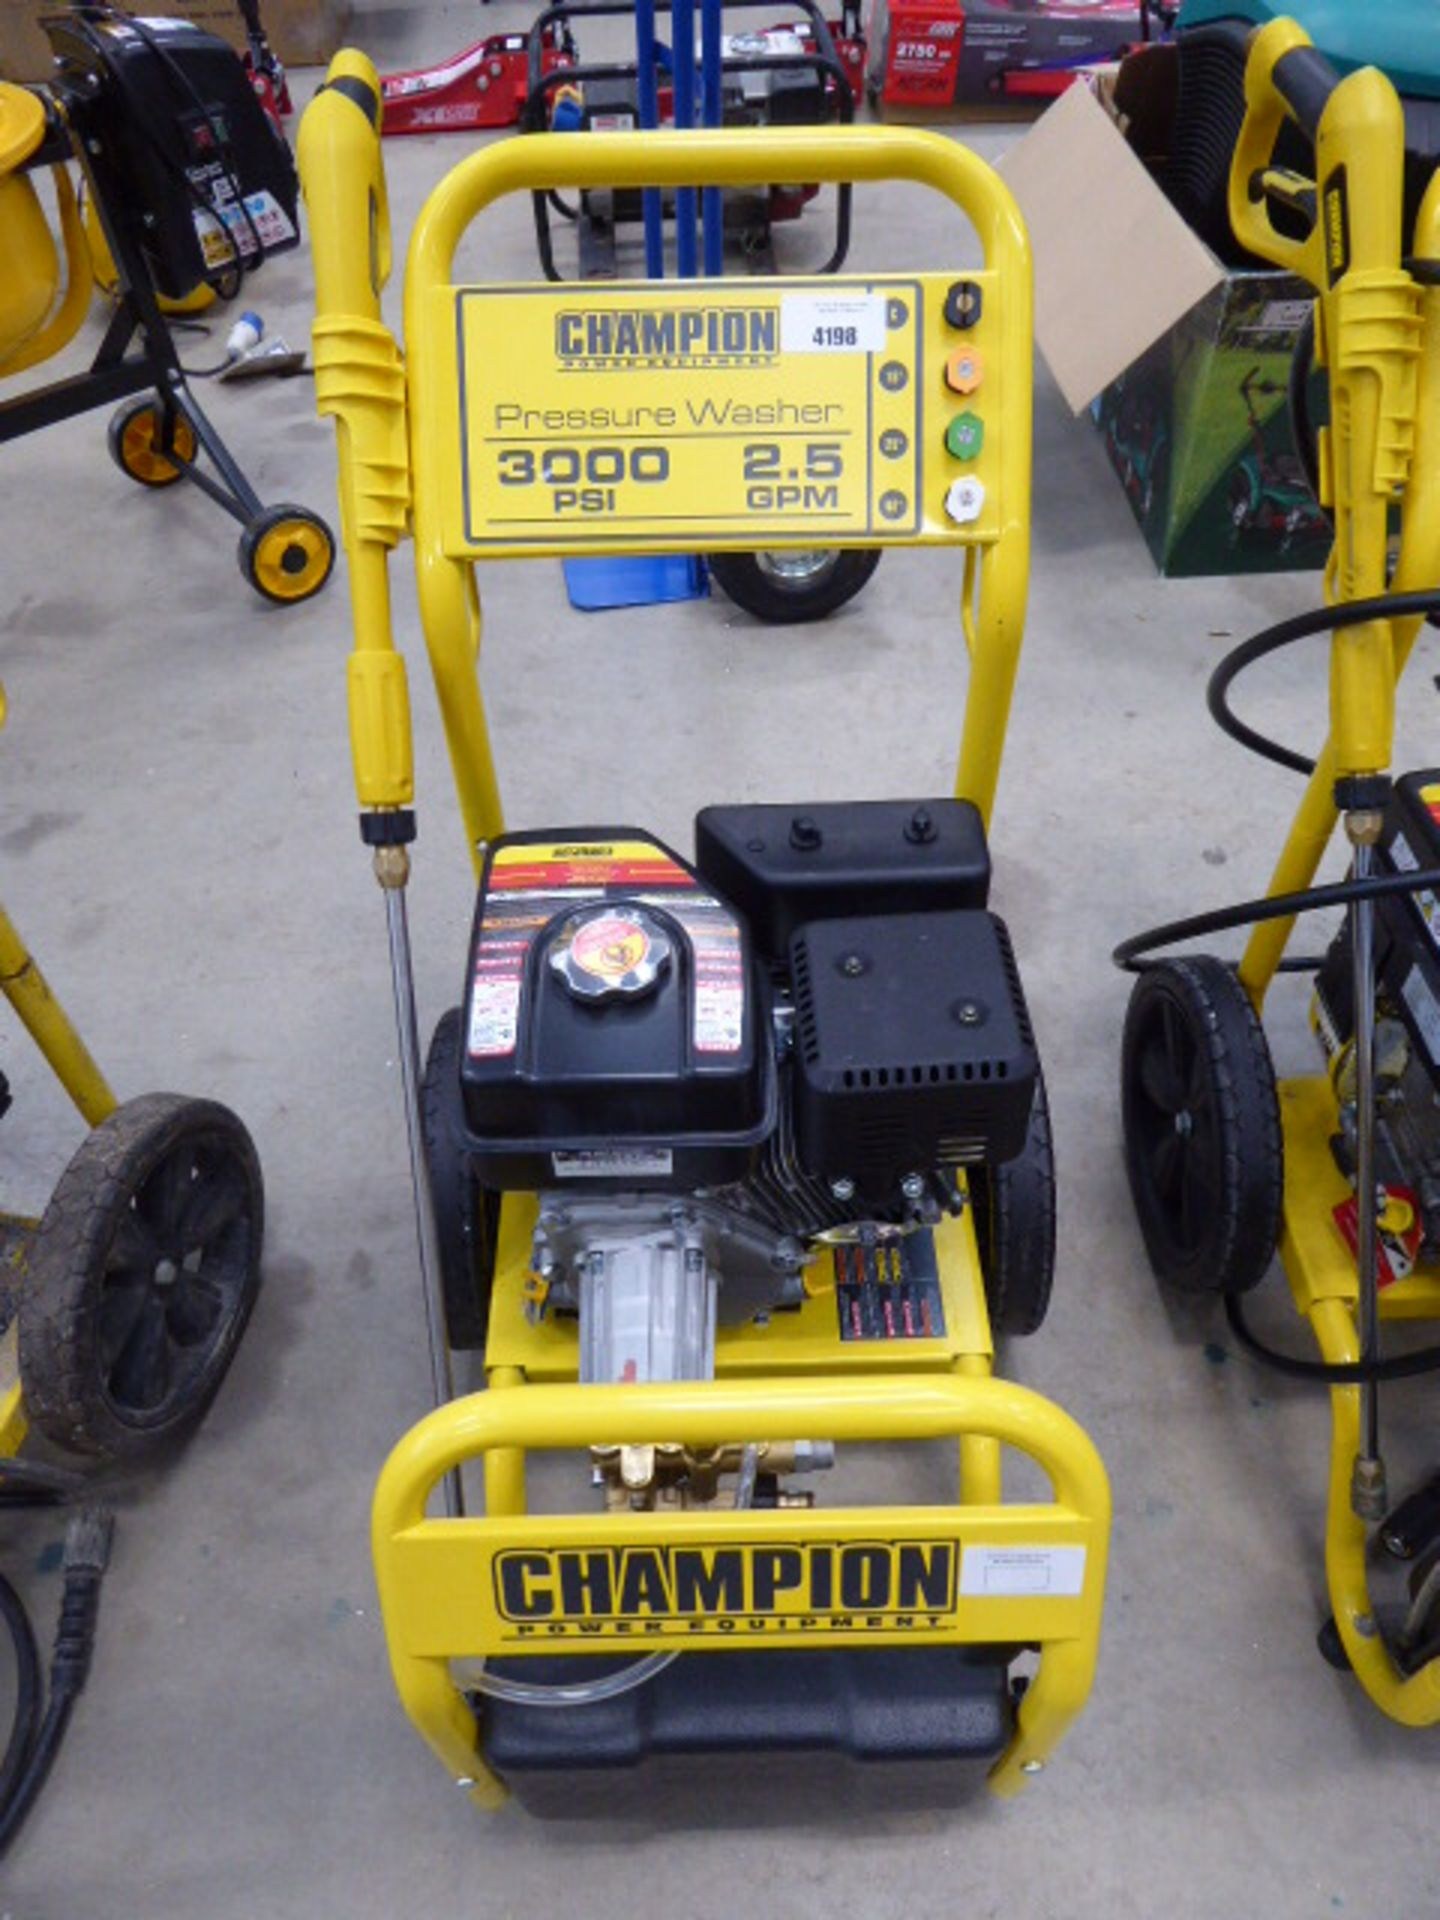 Champion petrol powered pressure washer (no hose)